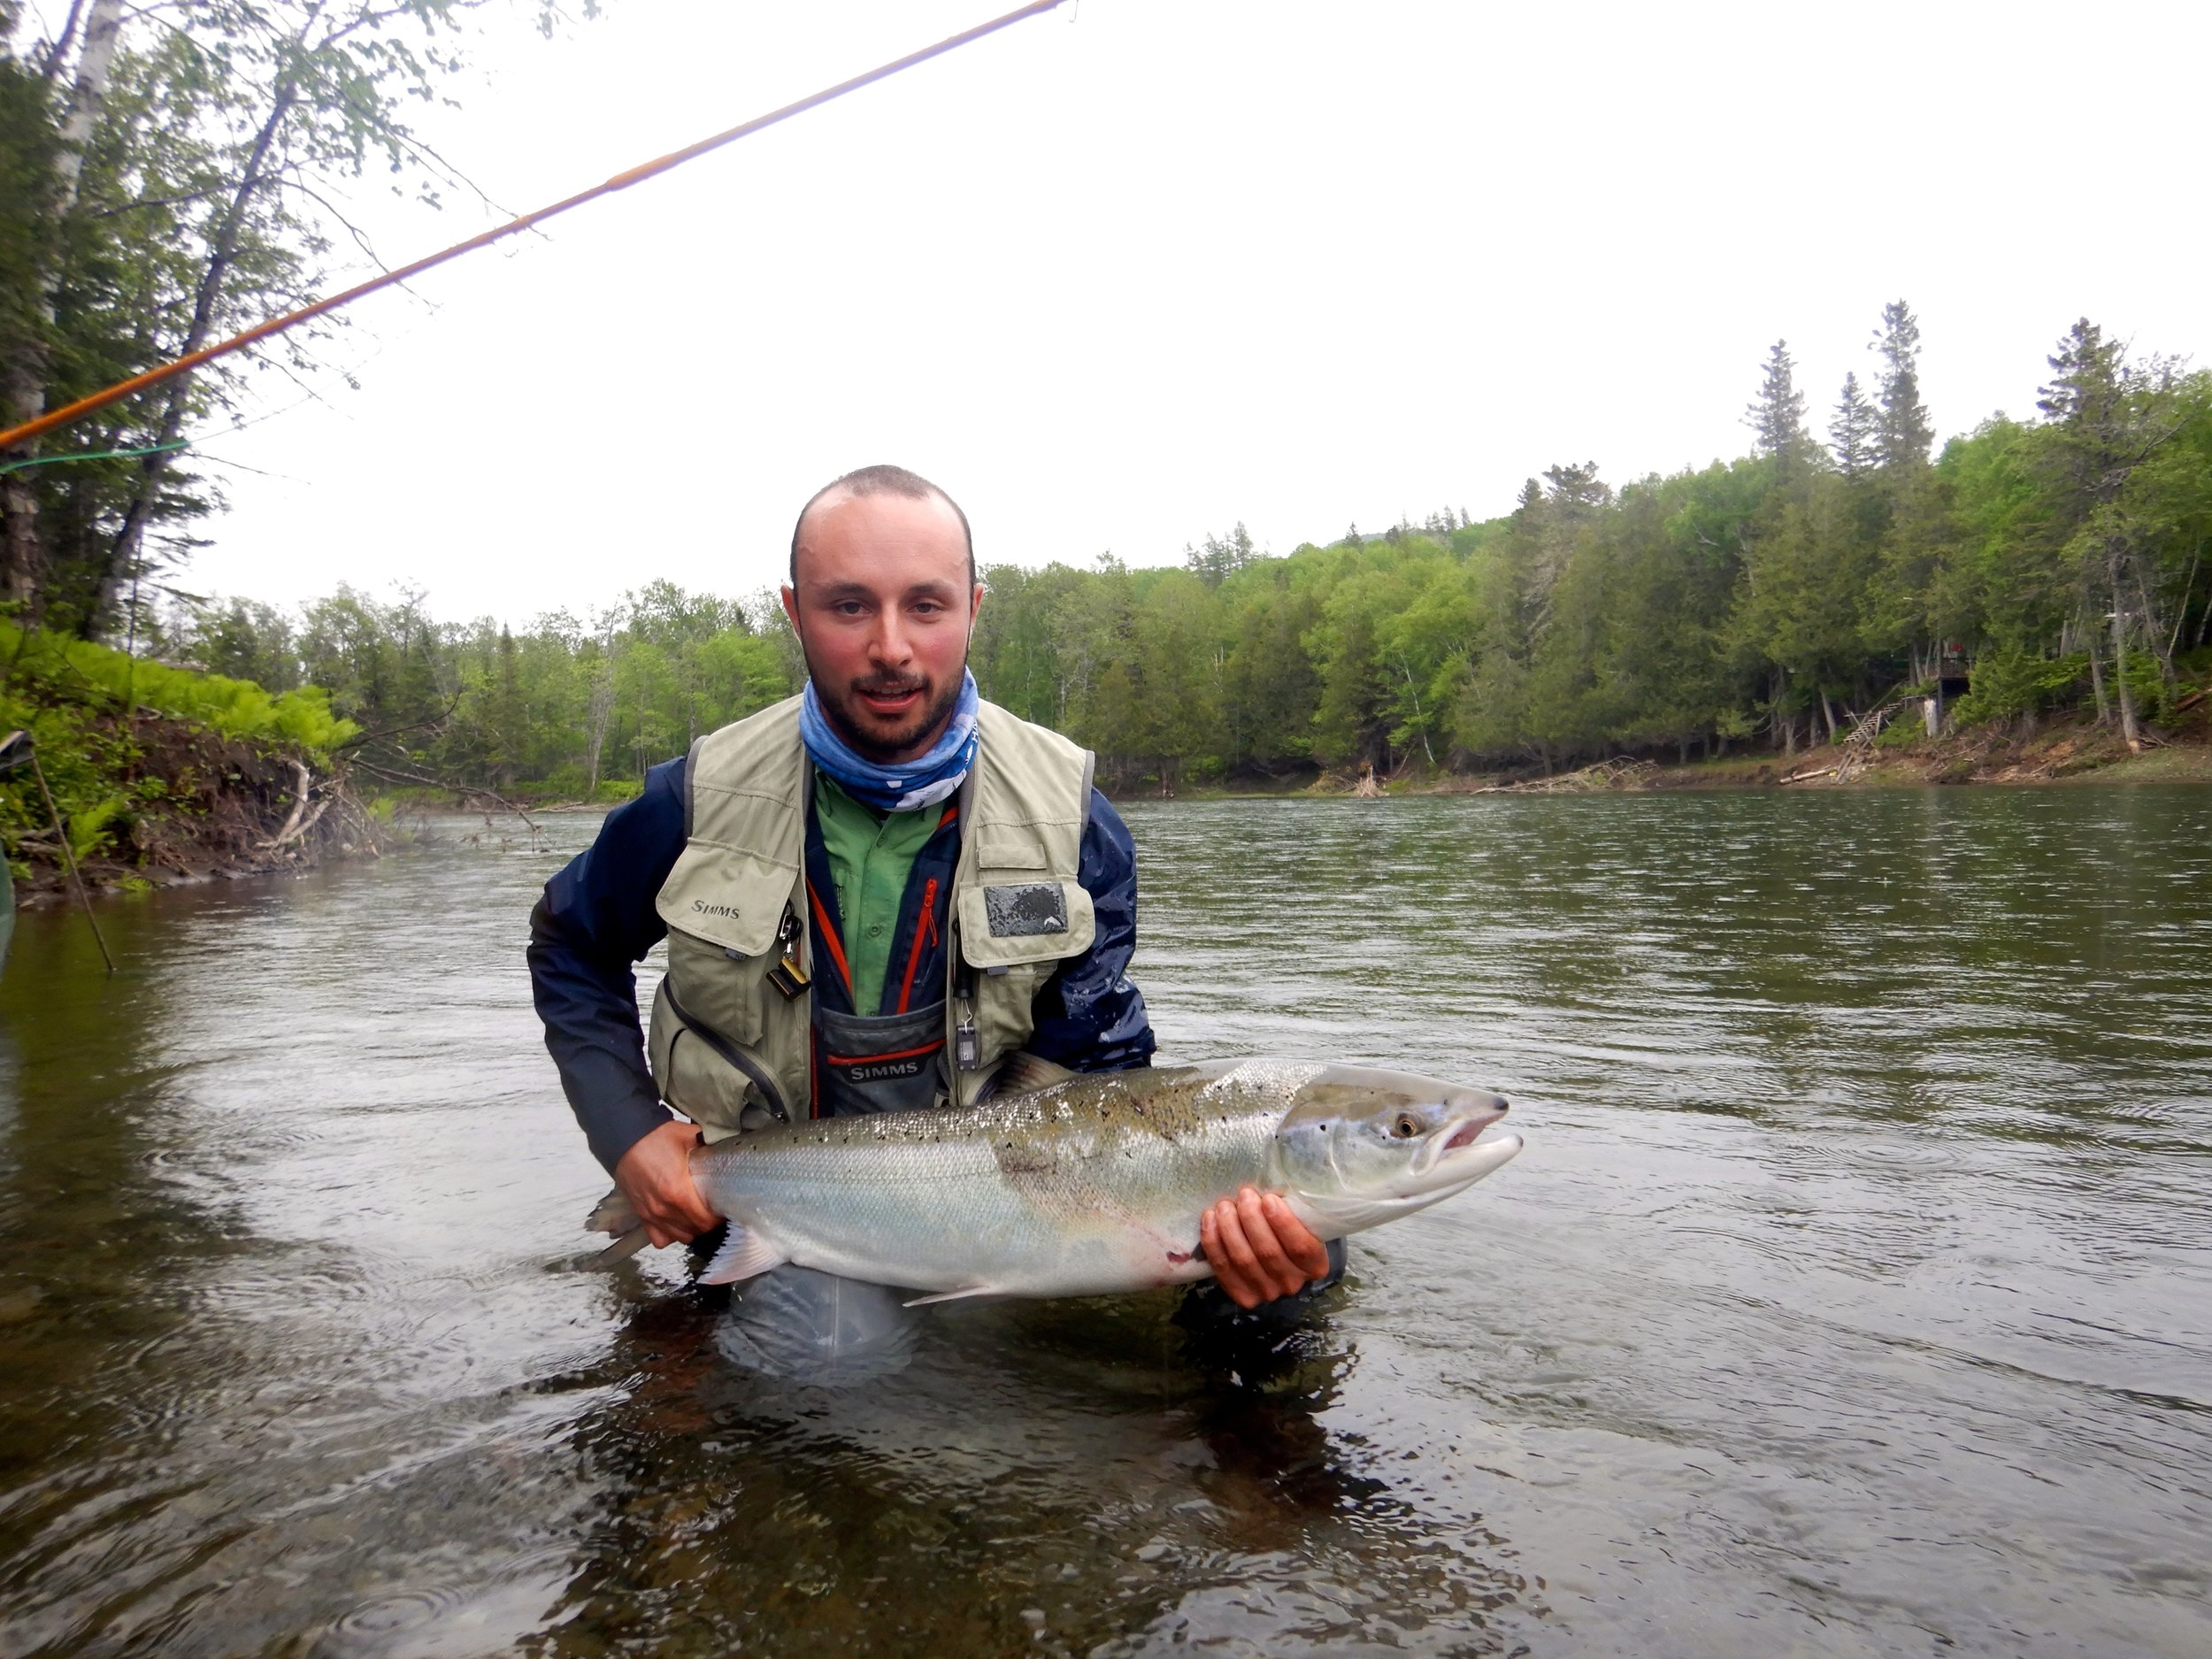 Filippo Battino came all the way from Italy to catch his first Grand Cascapedia salmon, way to go Filippo !